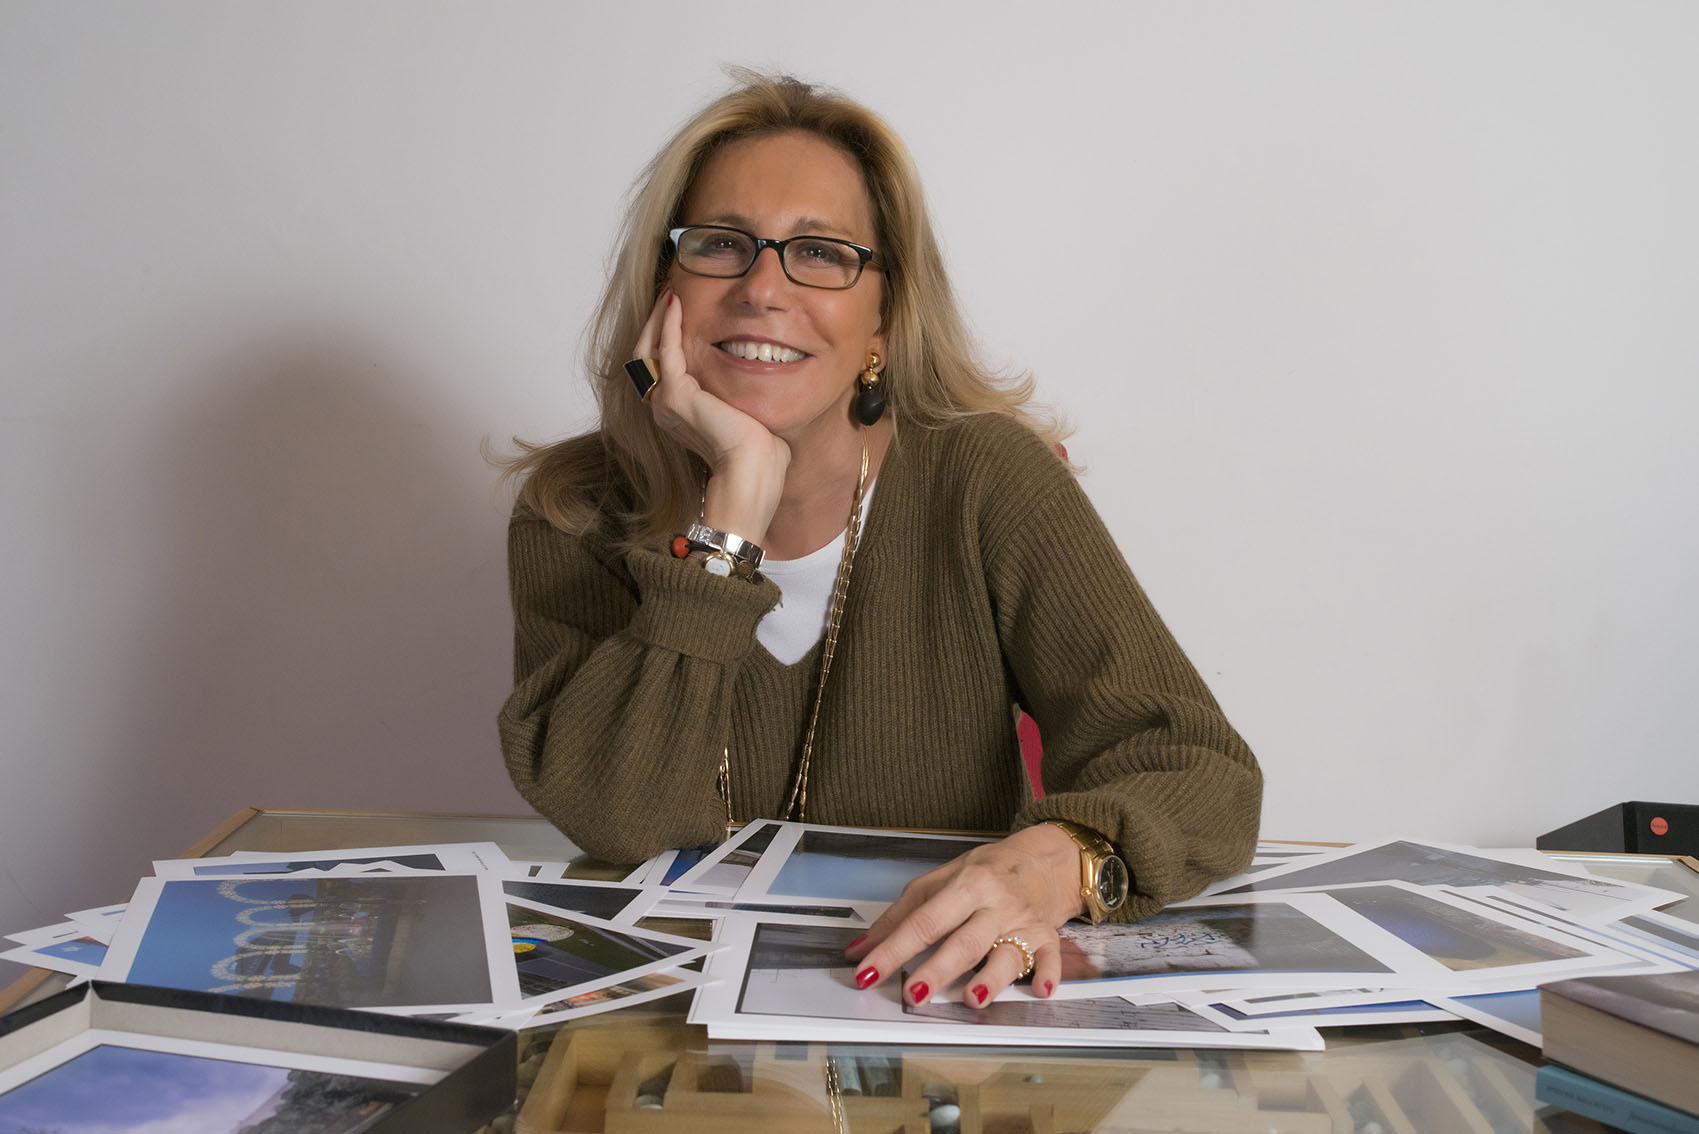 Nicoletta Rusconi, 2014 - photo Pio Tarantini